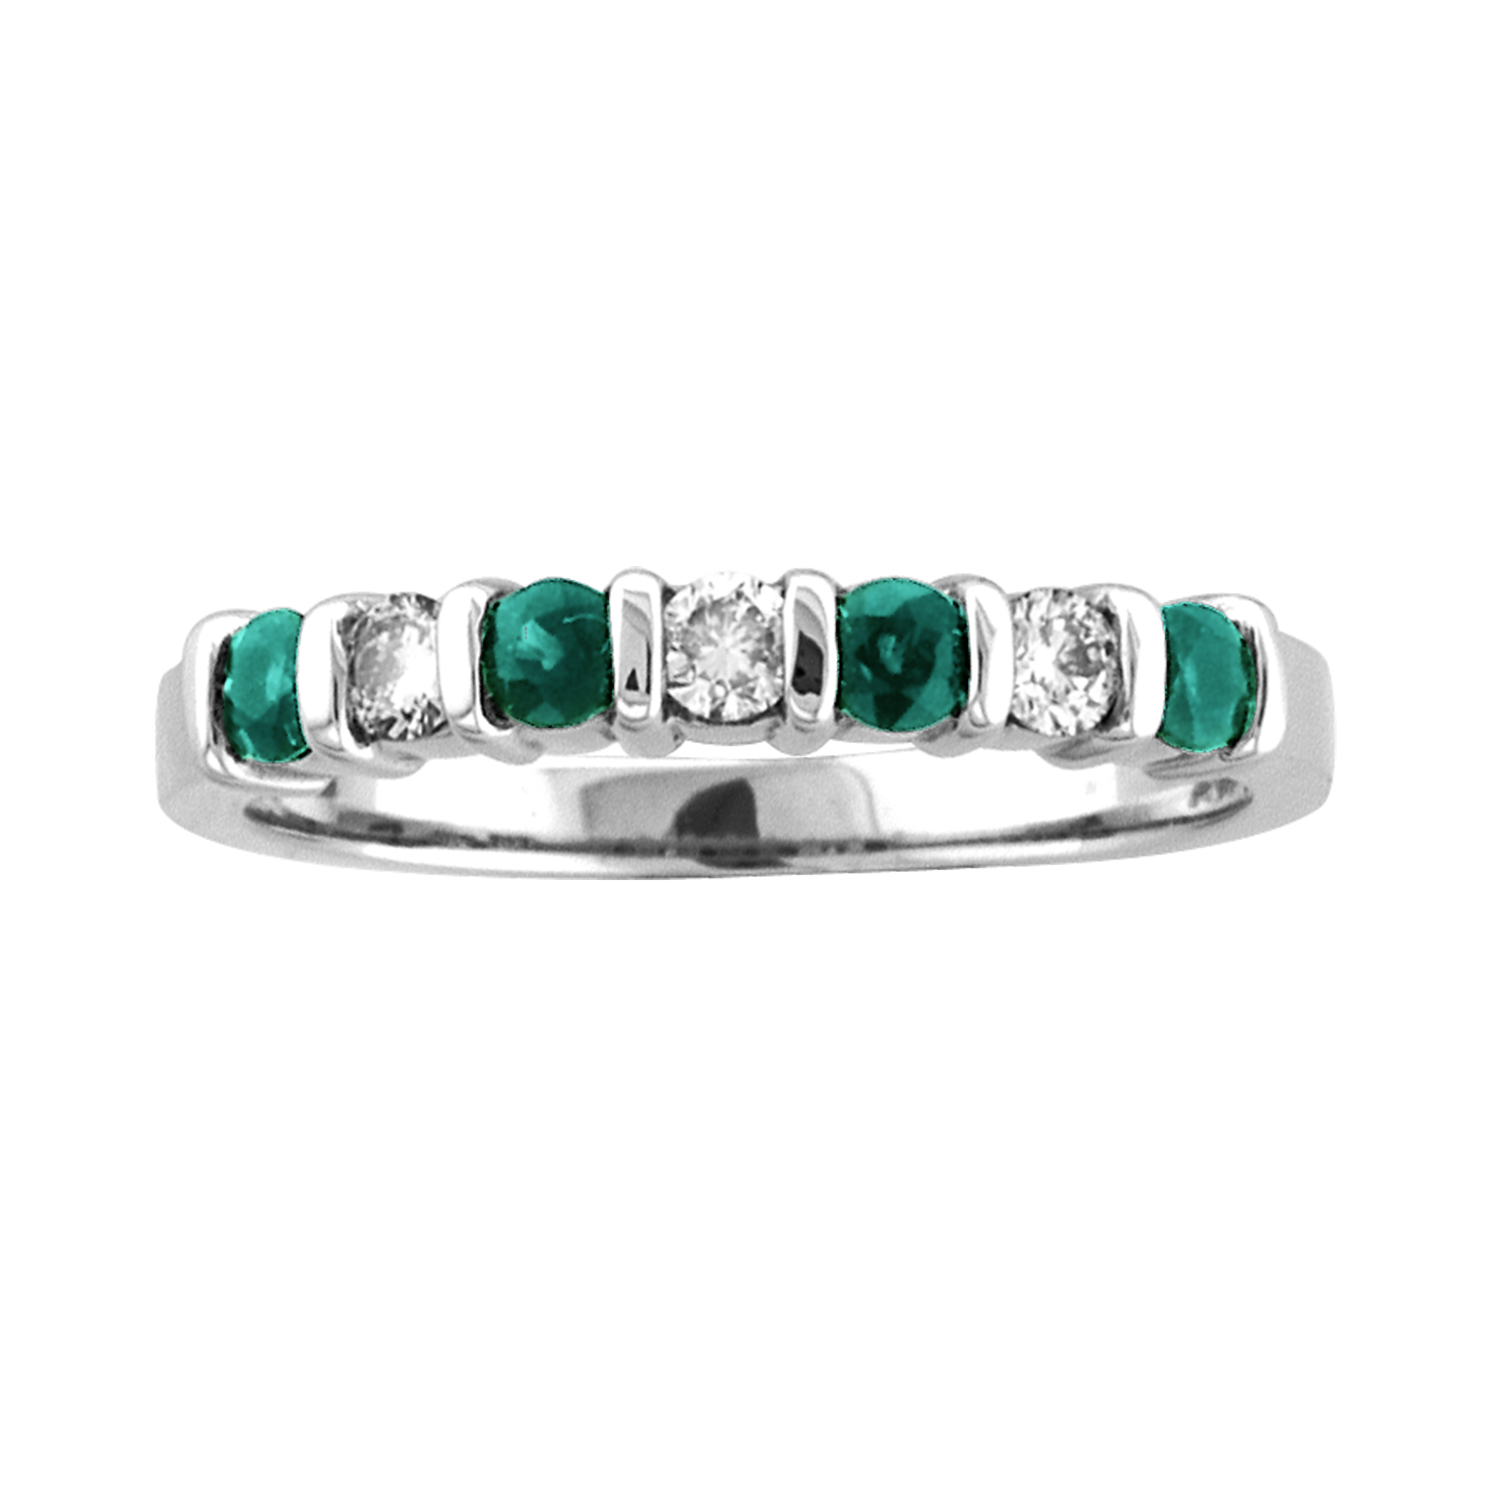 View 14k Gold Ring 0.27ct tw  Round Diamonds and Emeralds Bar Set Band Wedding or Anniversary Ring